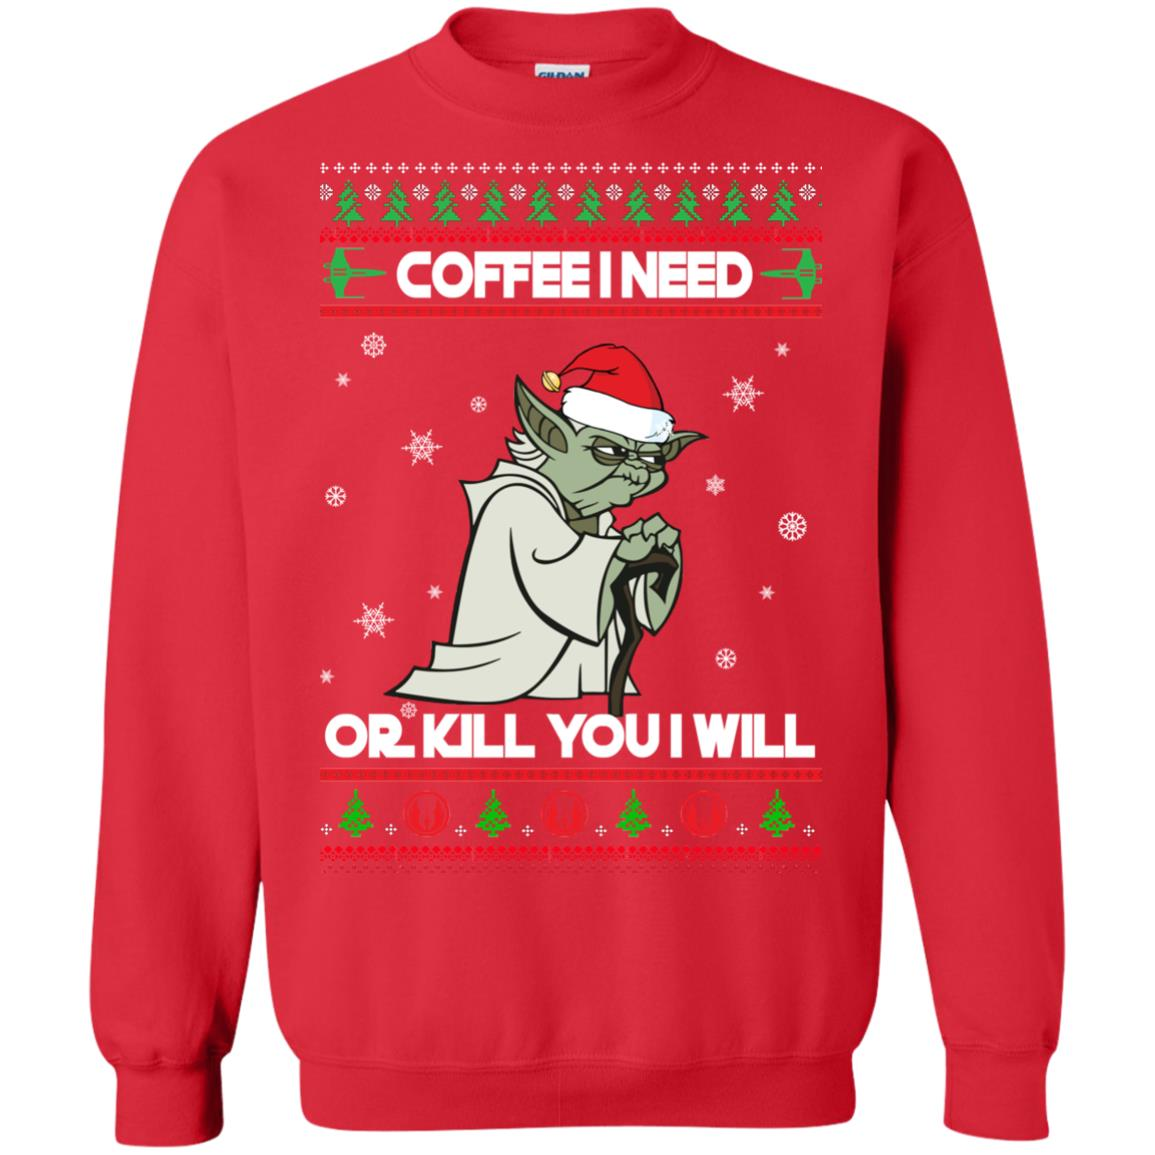 image 1244px Star Wars Yoda Sweater: Coffee I Need Or Kill You I Will Christmas Sweater